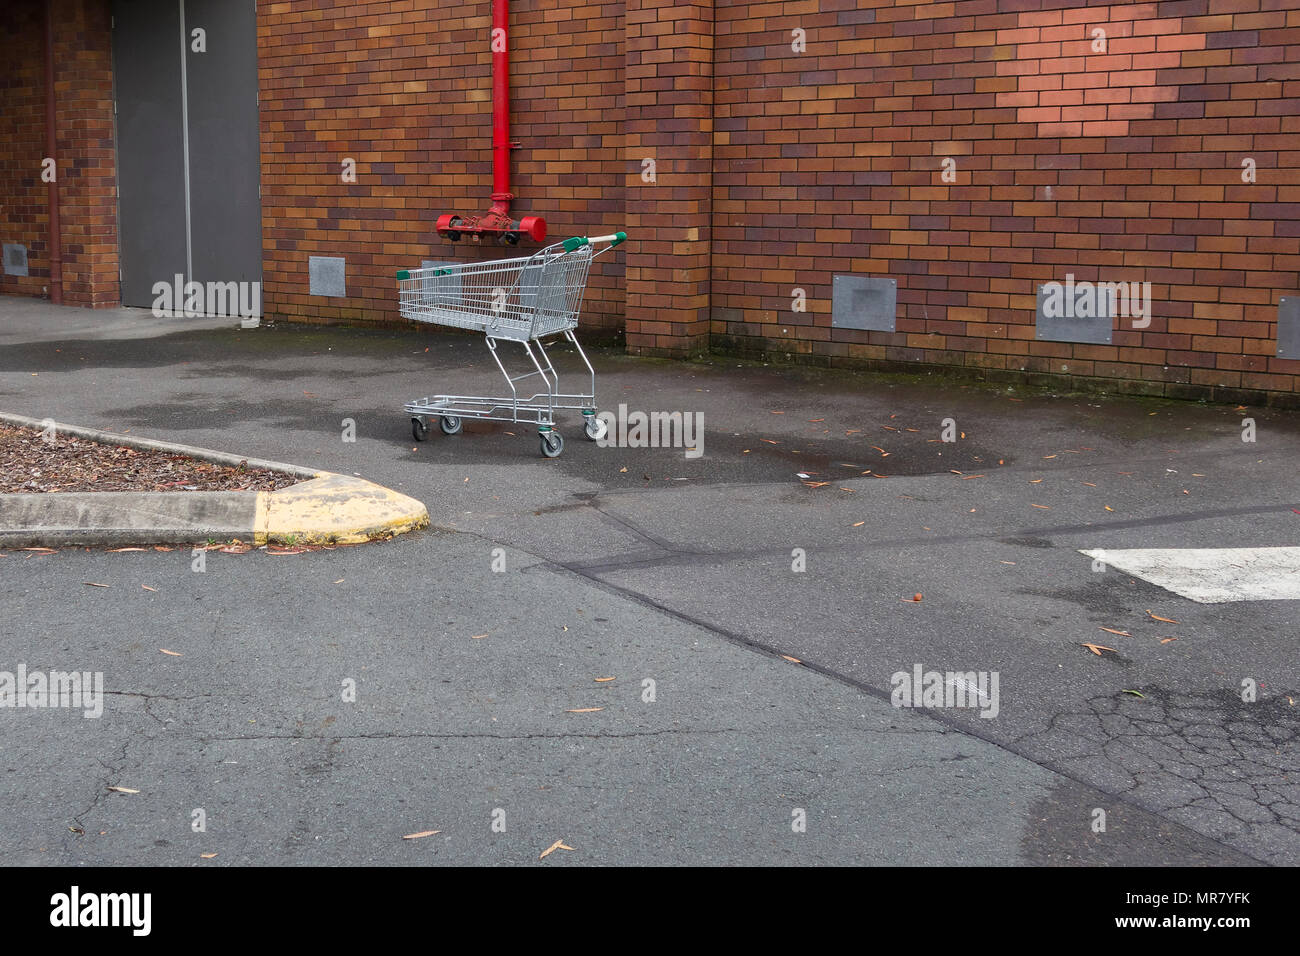 Shopping cart found abandoned in carpark - Stock Image